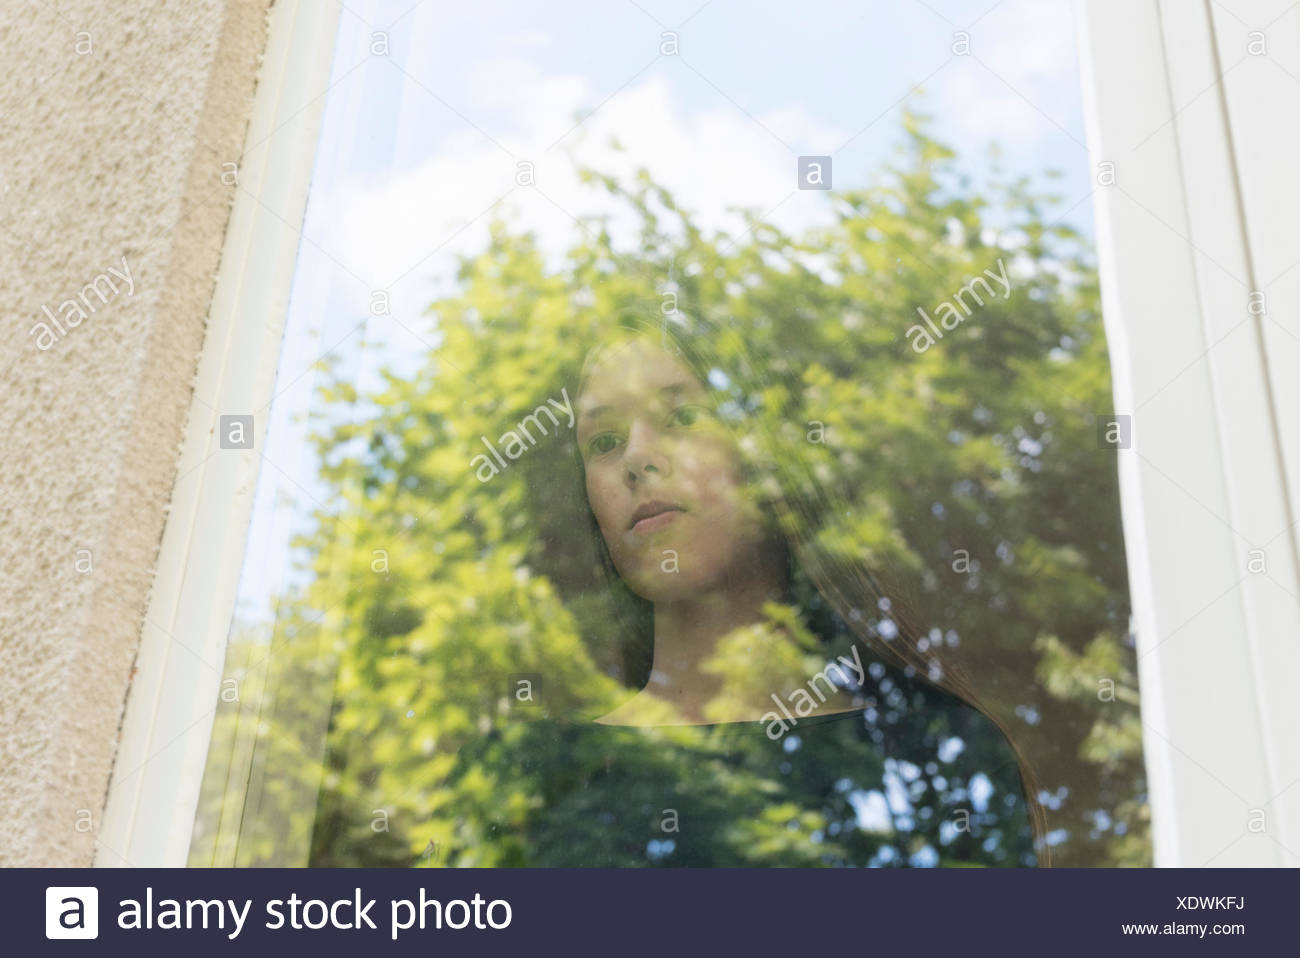 A girl looking out a window - Stock Image